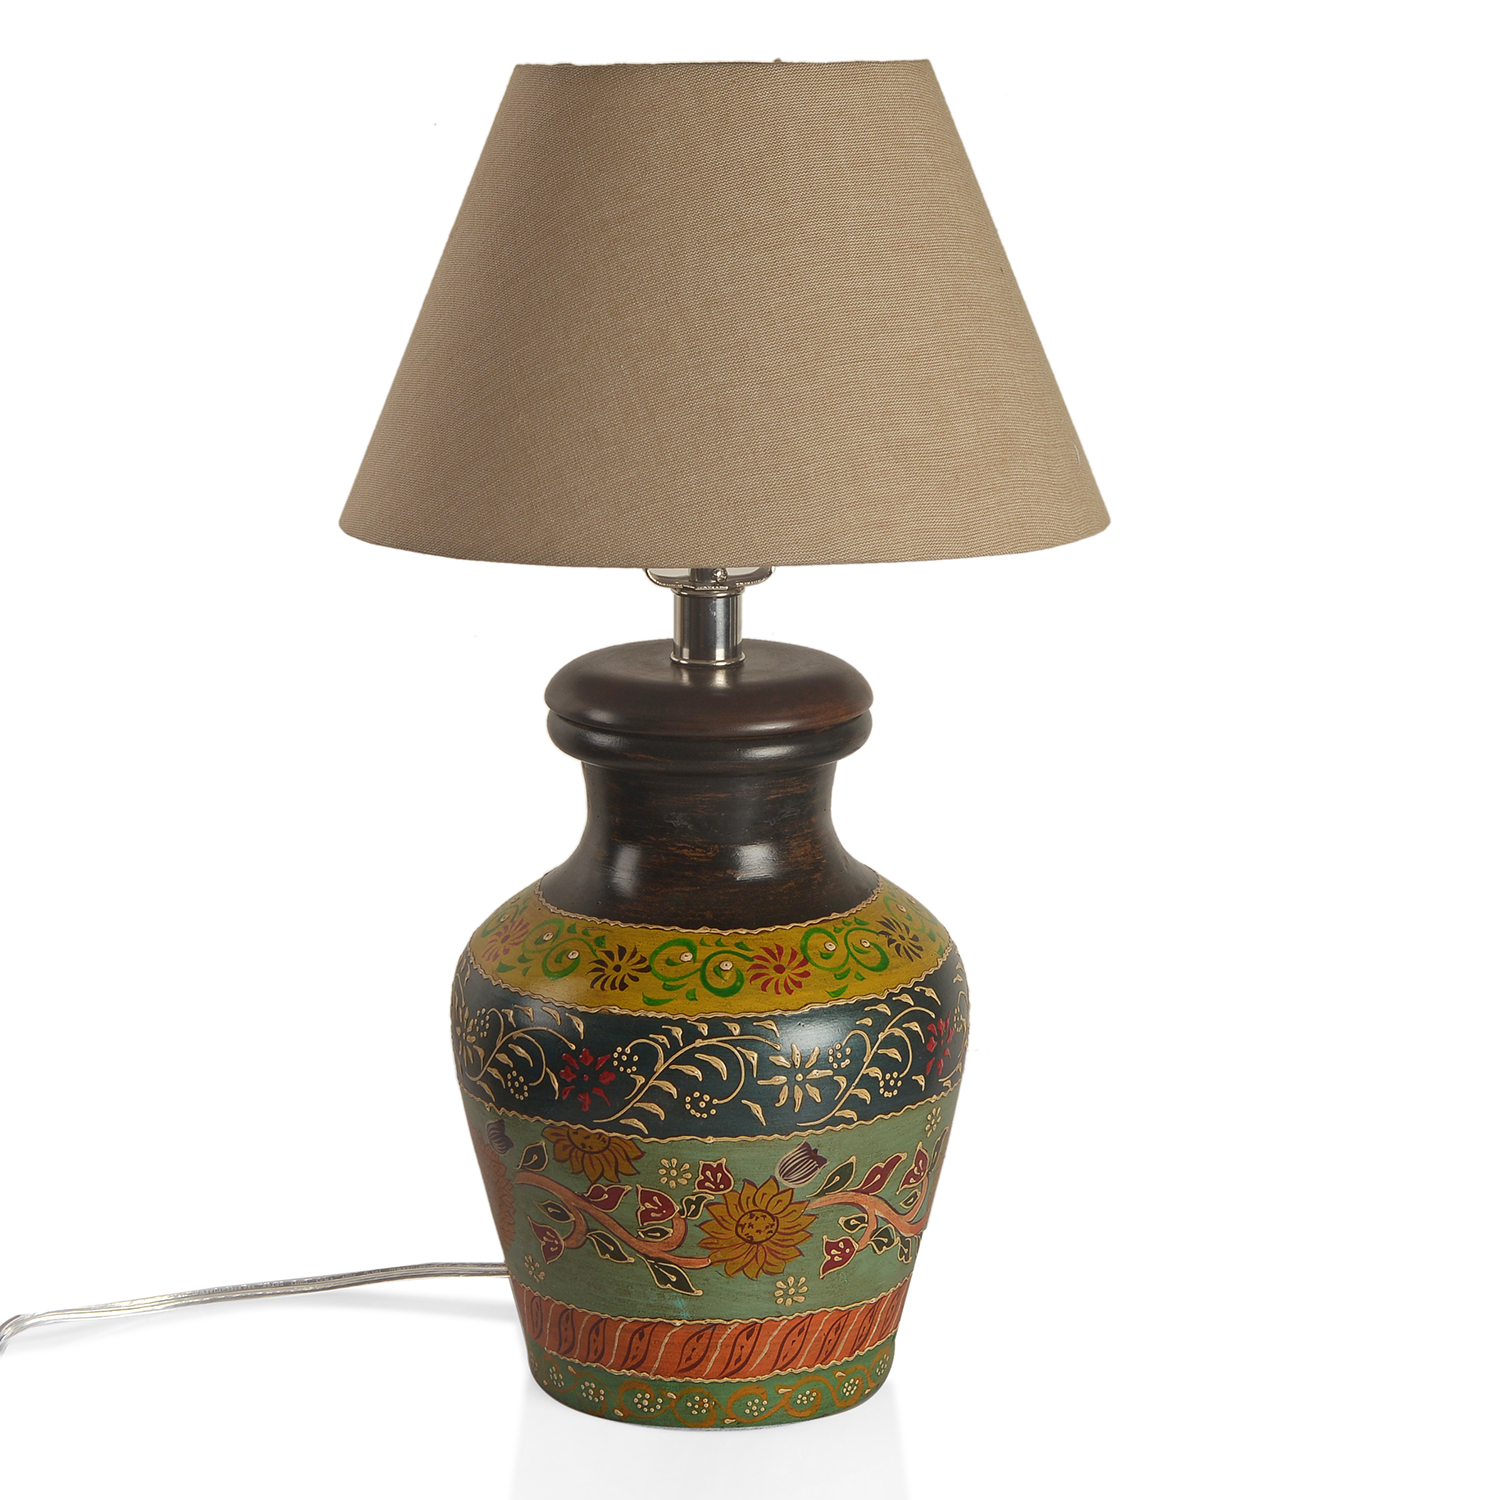 Pot Table Lamps Hand Painted Electrical Multi Color Floral Pattern